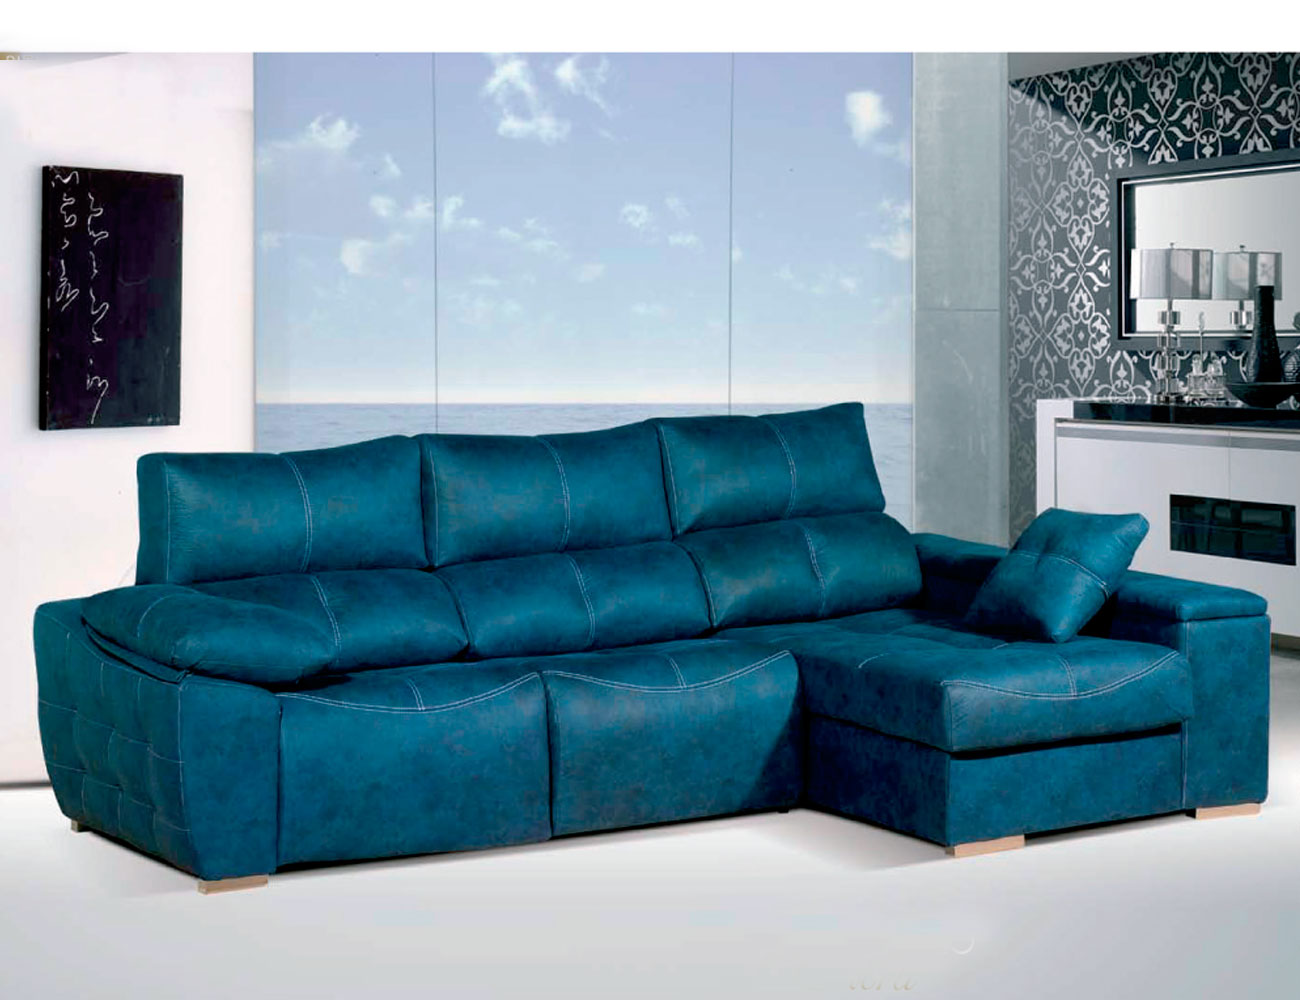 Sofa chaiselongue relax 2 motores anti manchas turquesa51